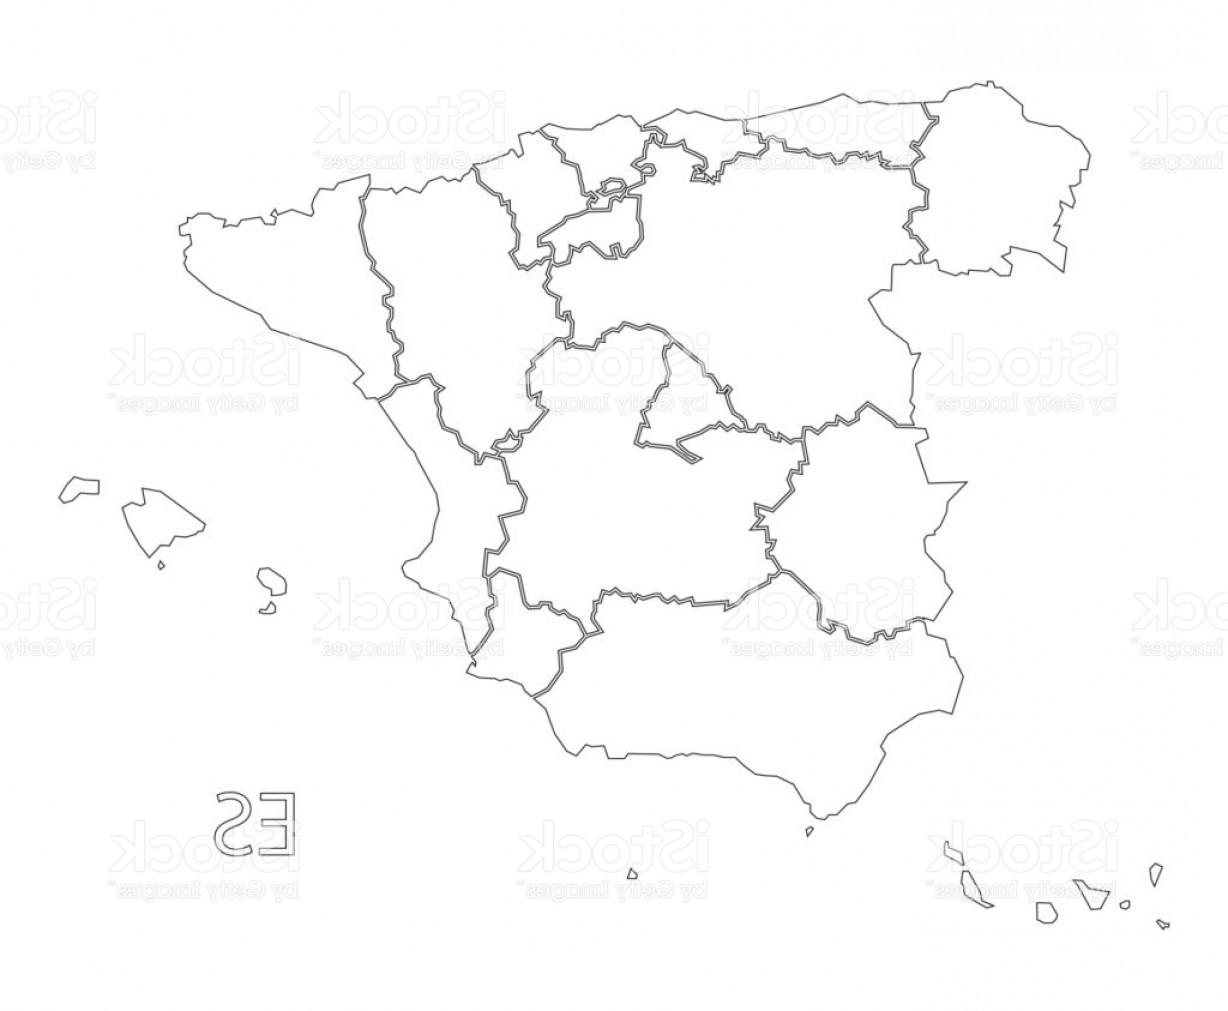 Spain Outline Vector: Spain Outline Silhouette Map Illustration With Provinces Gm